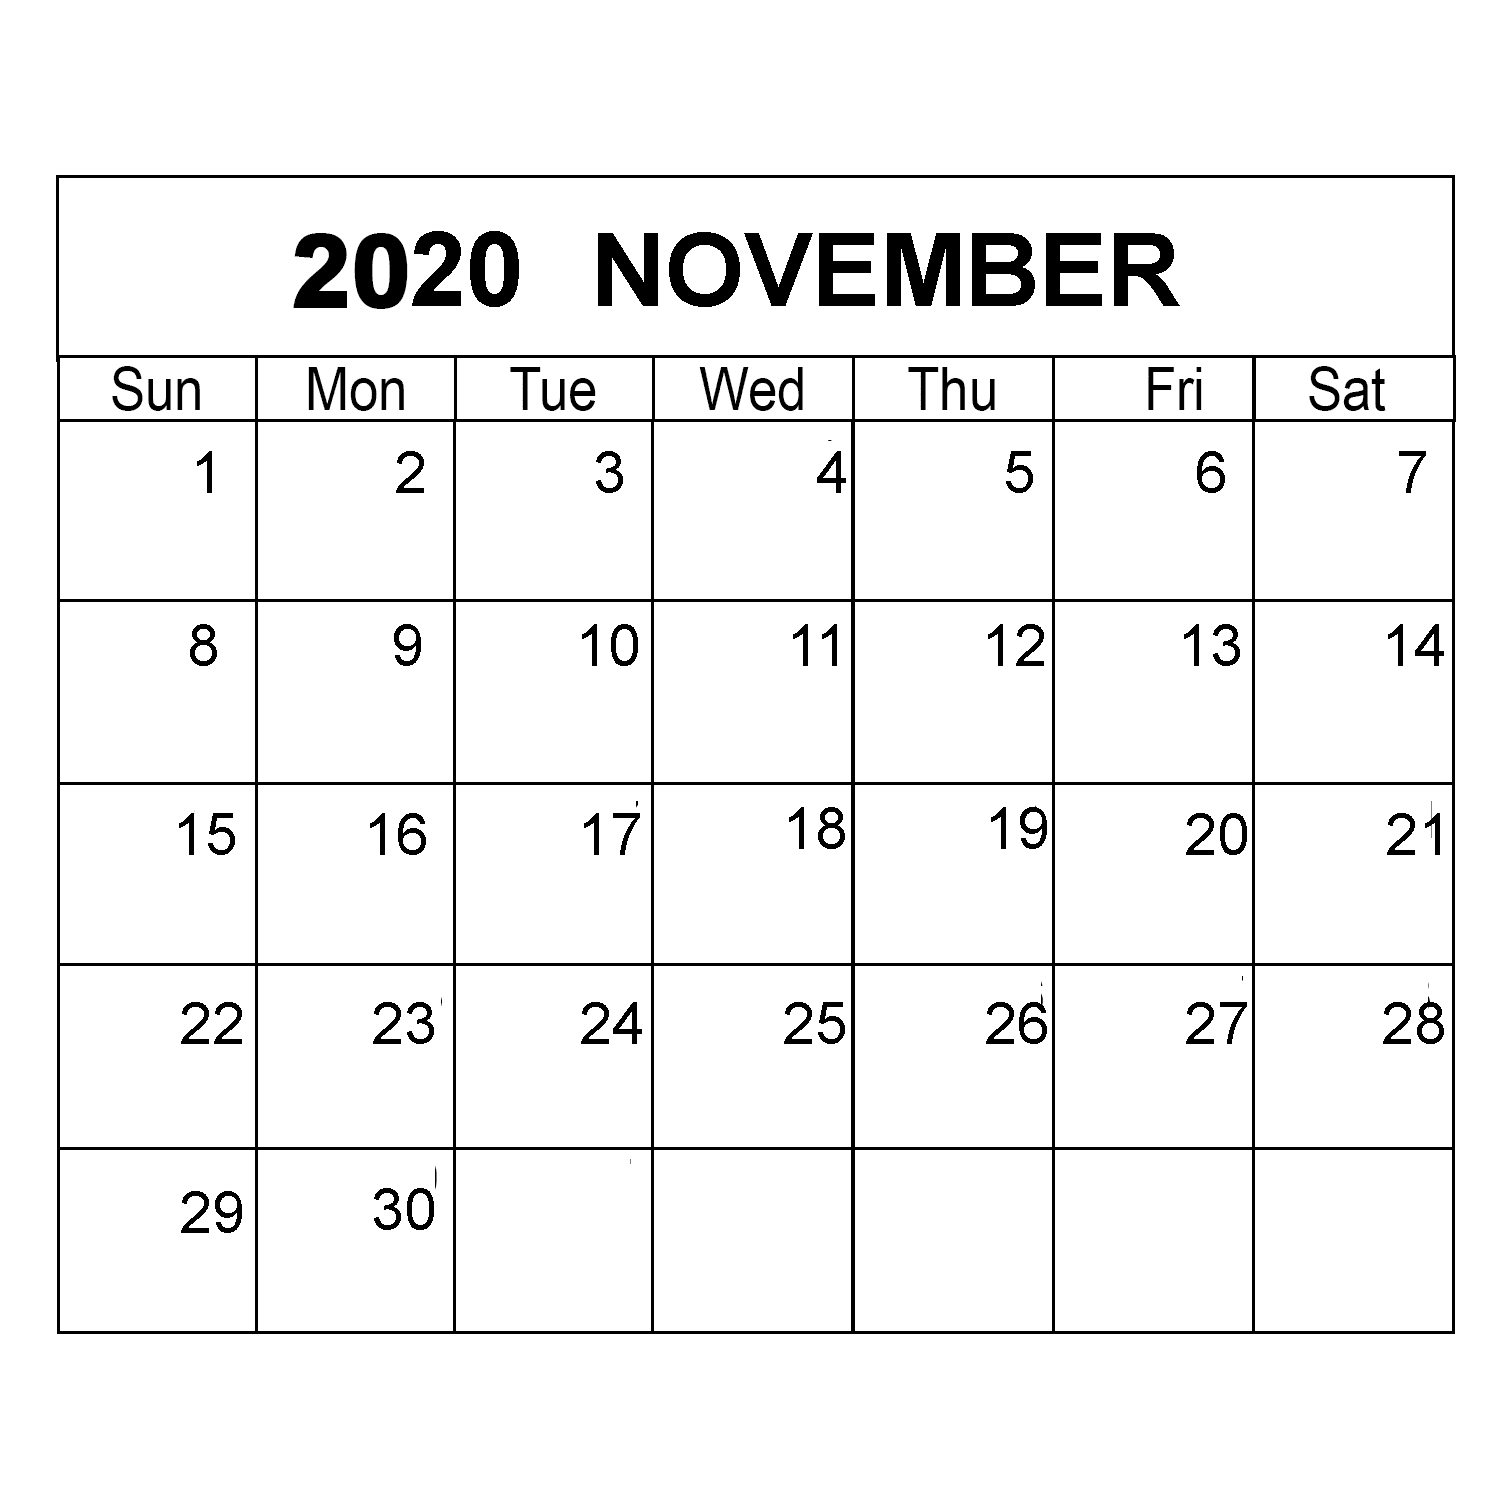 Calendar Monthly November 2020 | Calendar Ideas Design Creative with November 2020 Calendar Excel